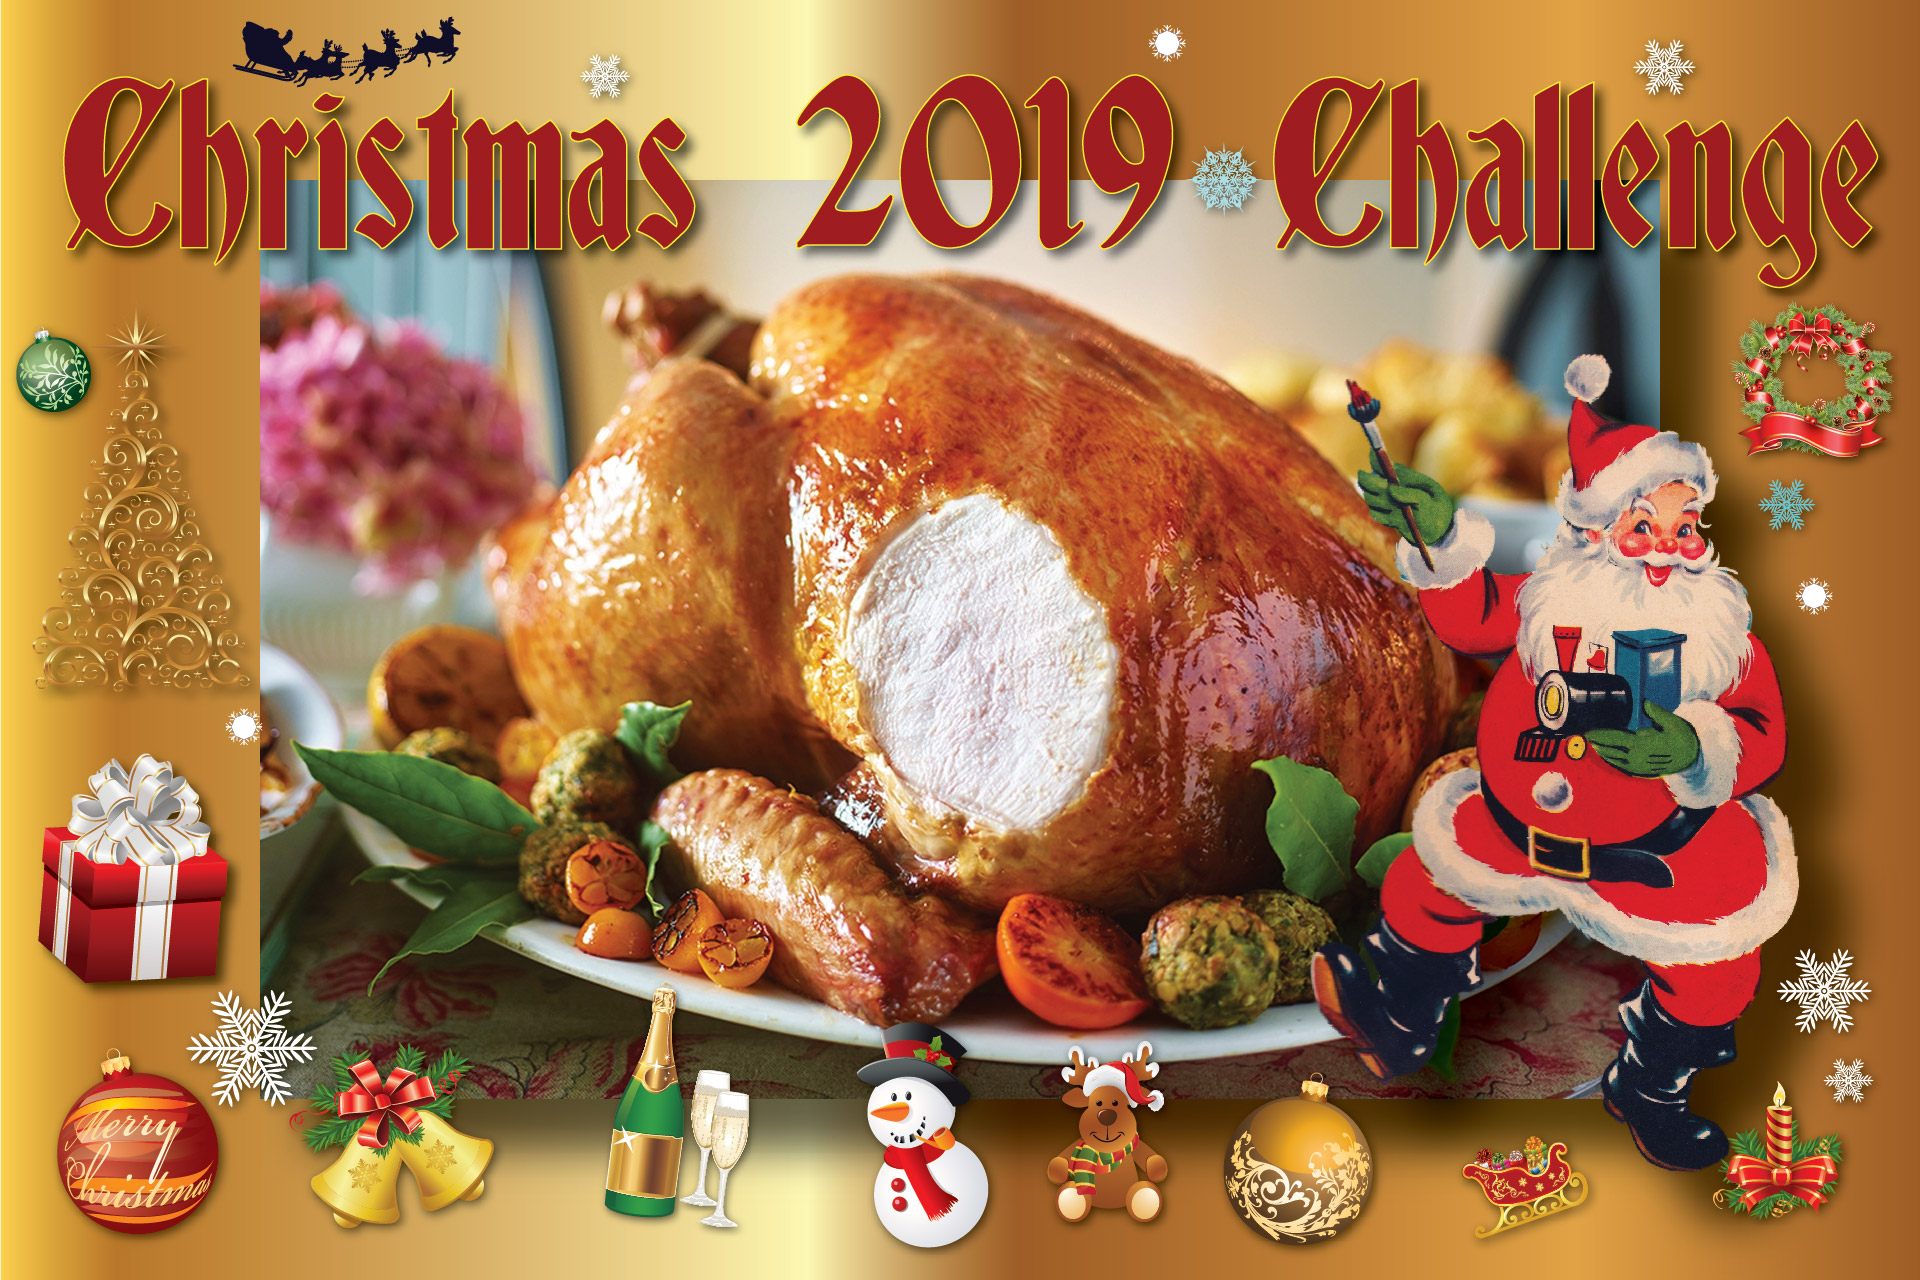 The Grovehill Christmas 2019 Challenge